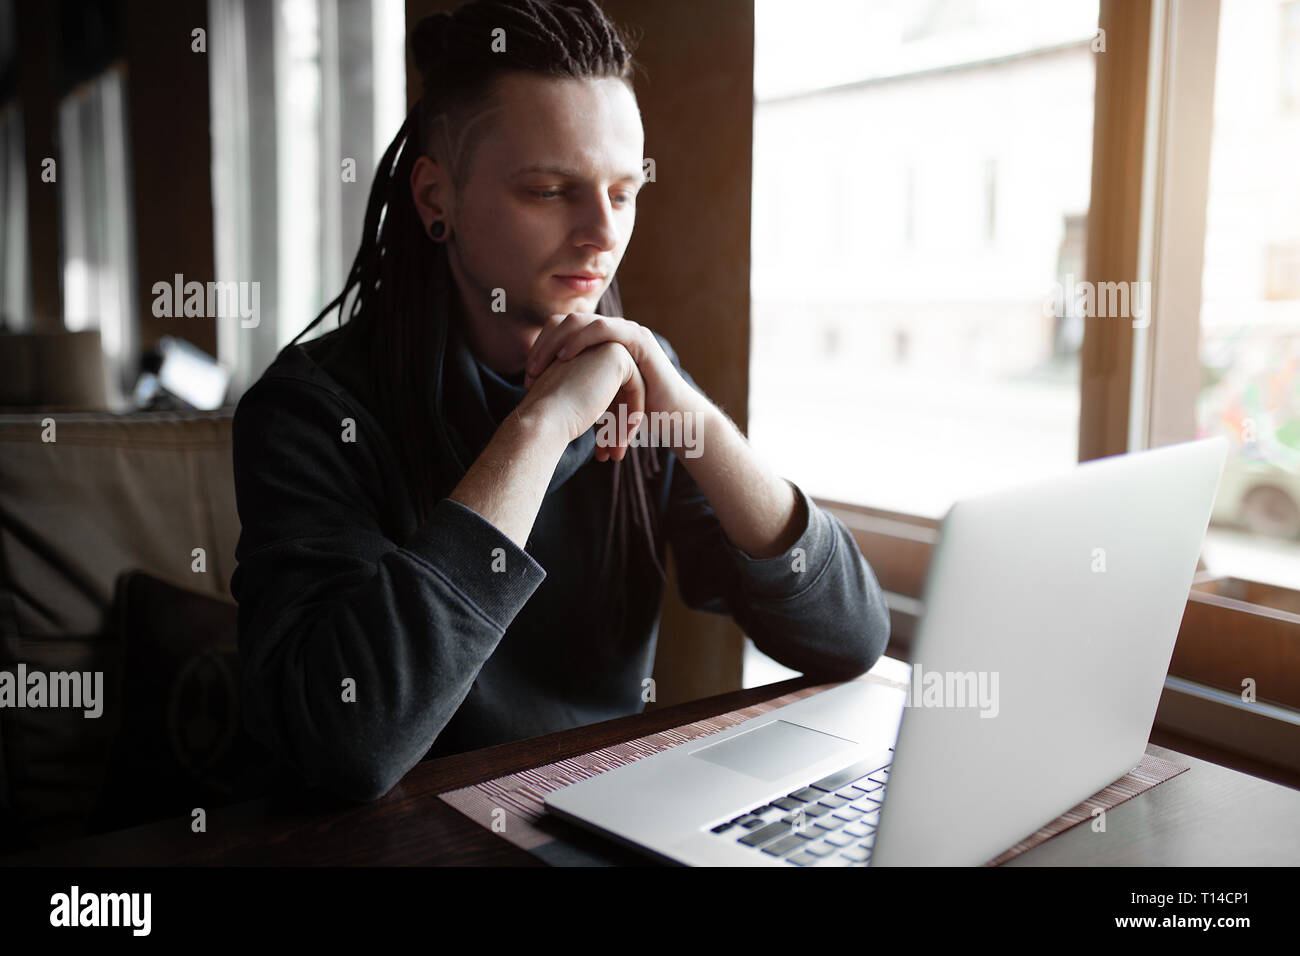 Young Businessman with dreadlock having doing his work in cafe with laptop. - Stock Image